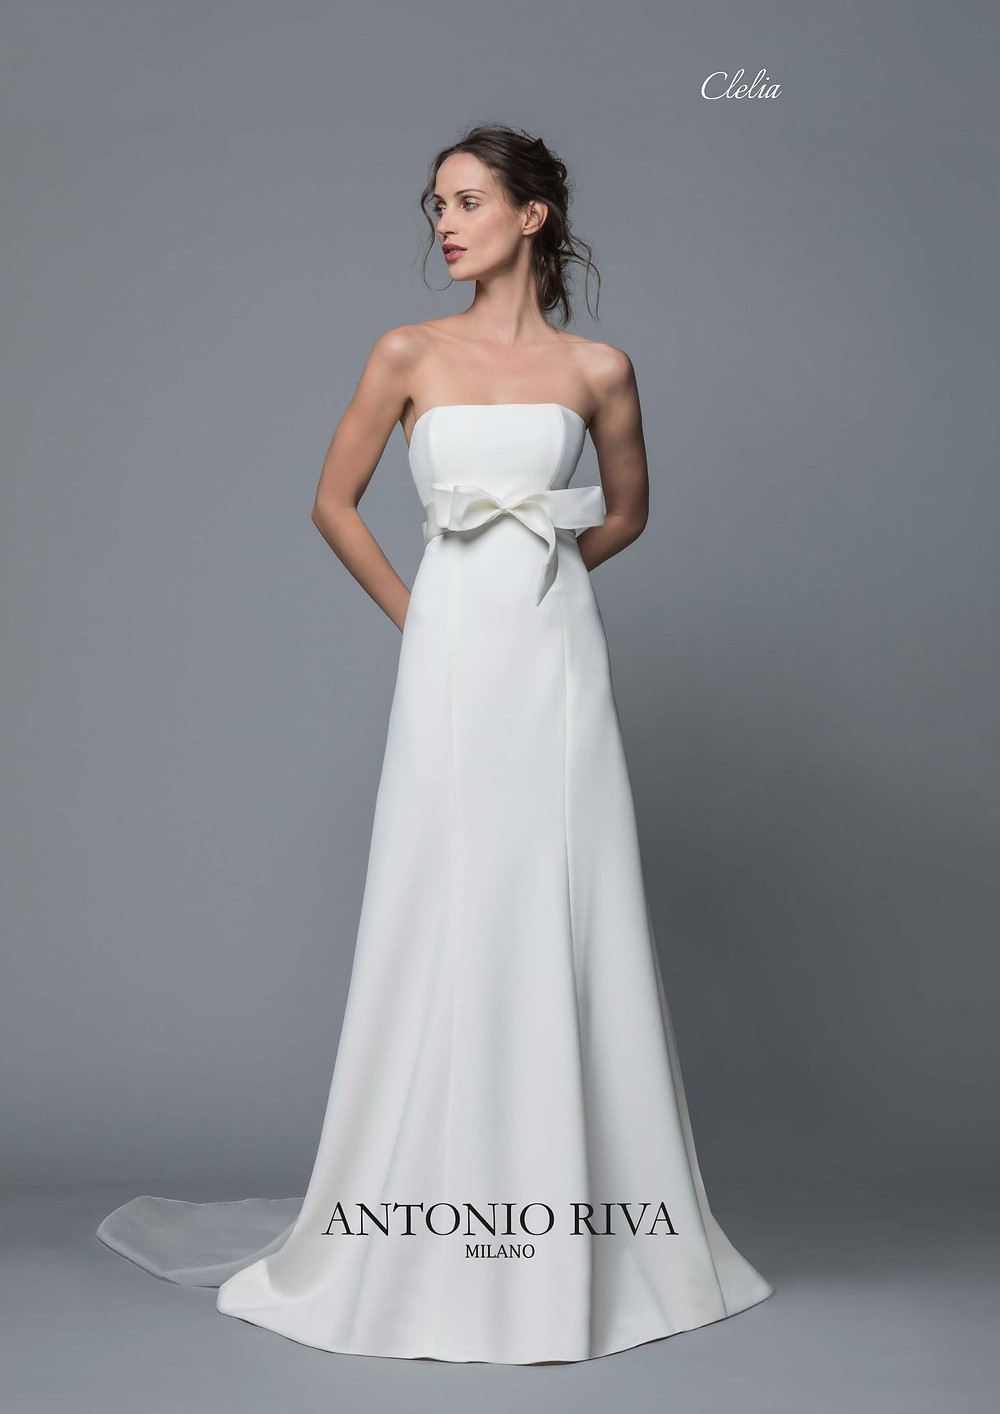 An Antonio Riva 2020 simple strapless crepe empire waist wedding dress with a bow